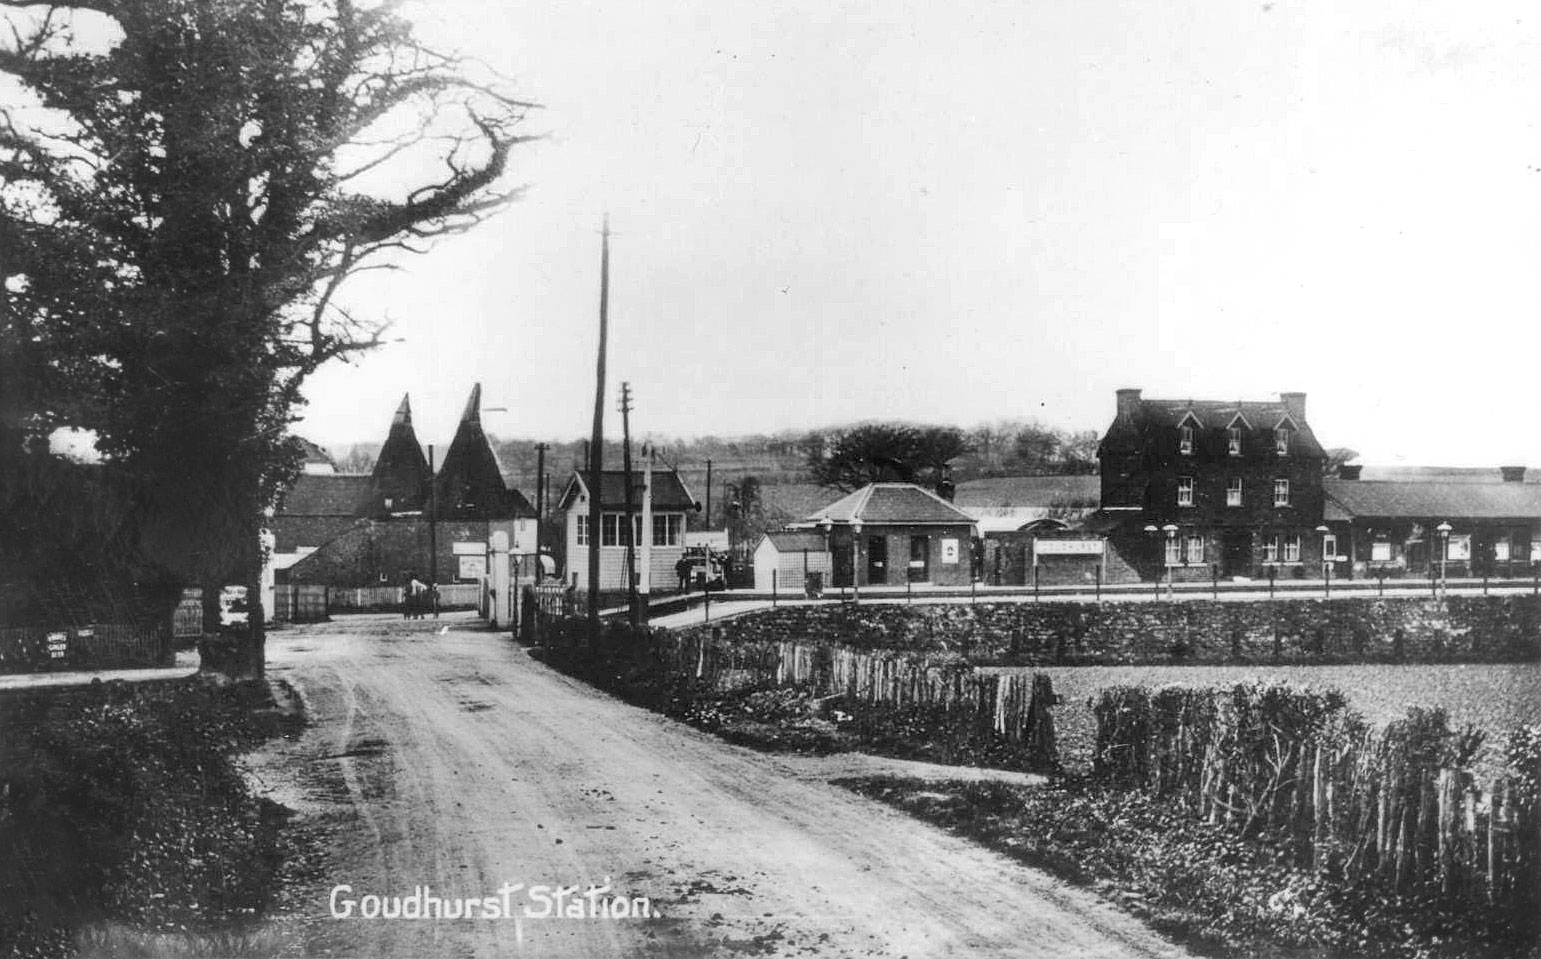 Goudhurst railway station from Station Road in the early 1900s